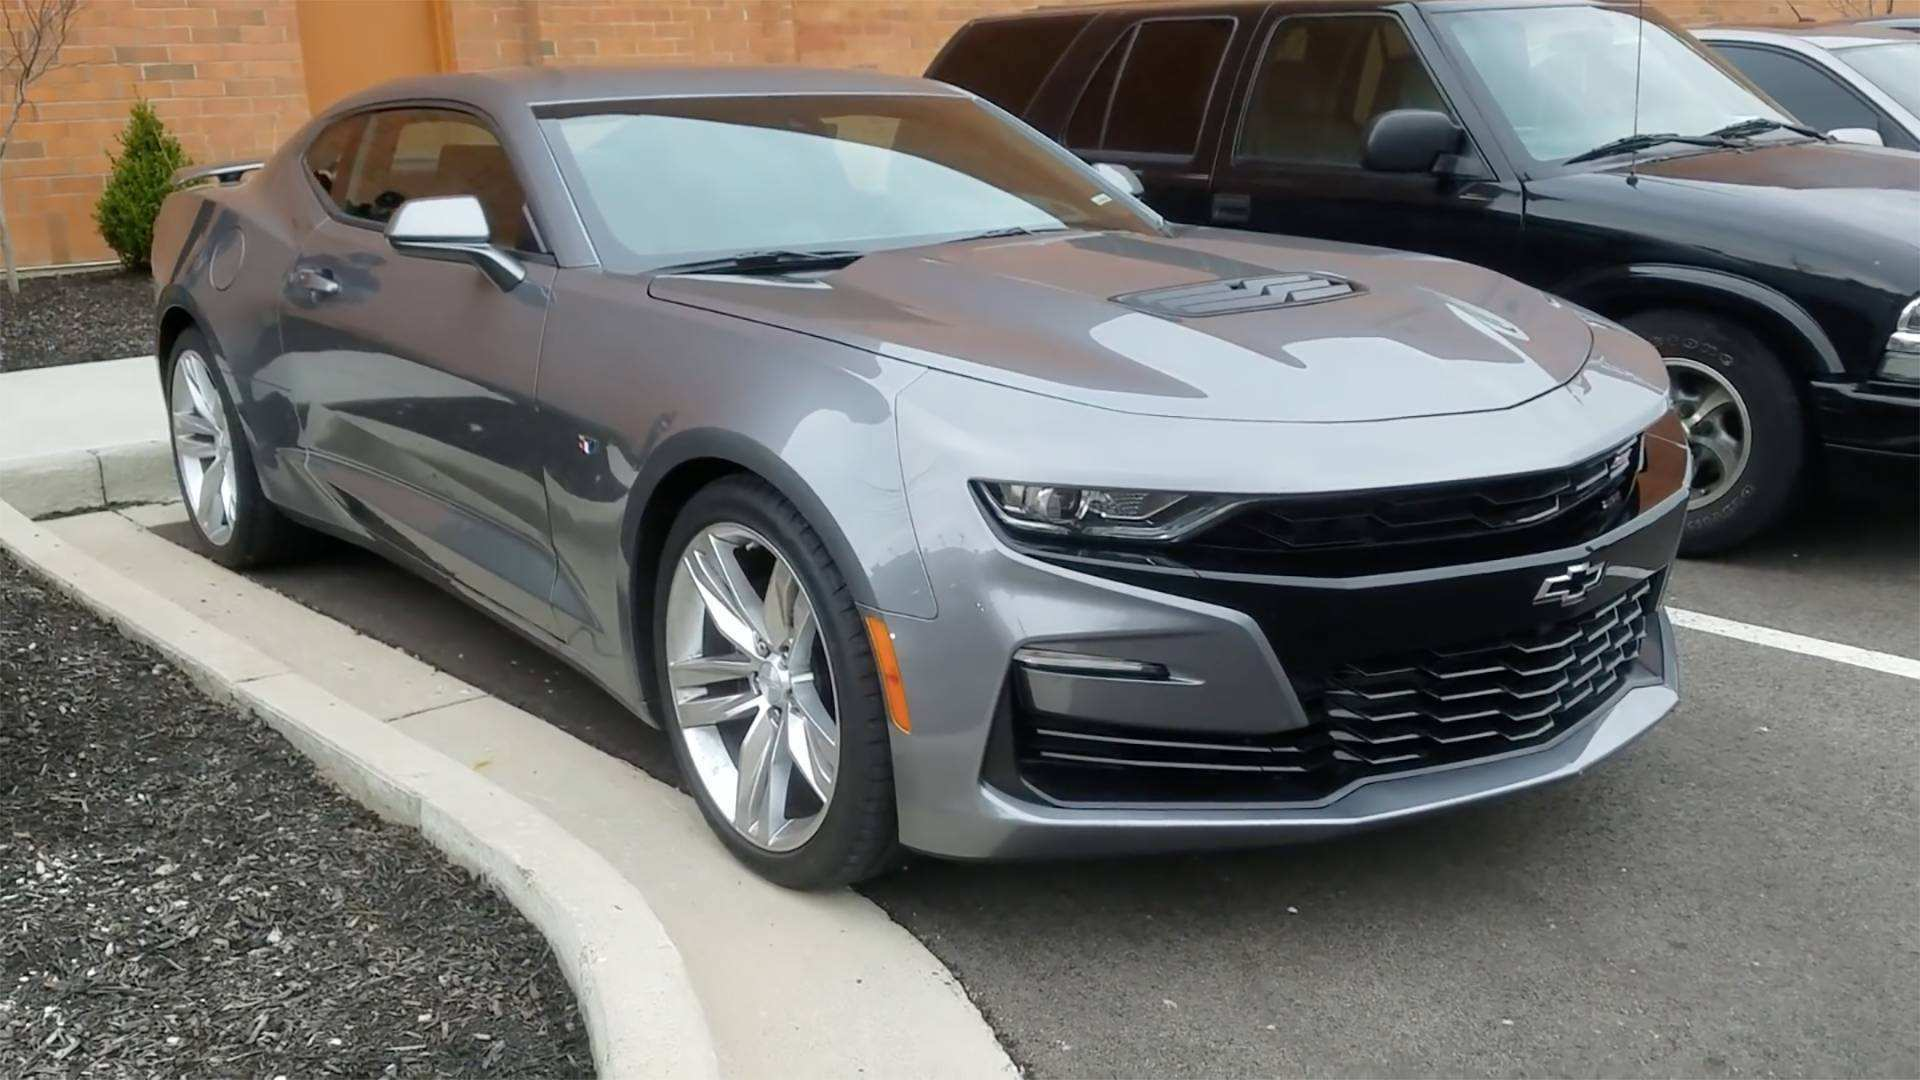 47 Best 2019 The Camaro Ss Pictures